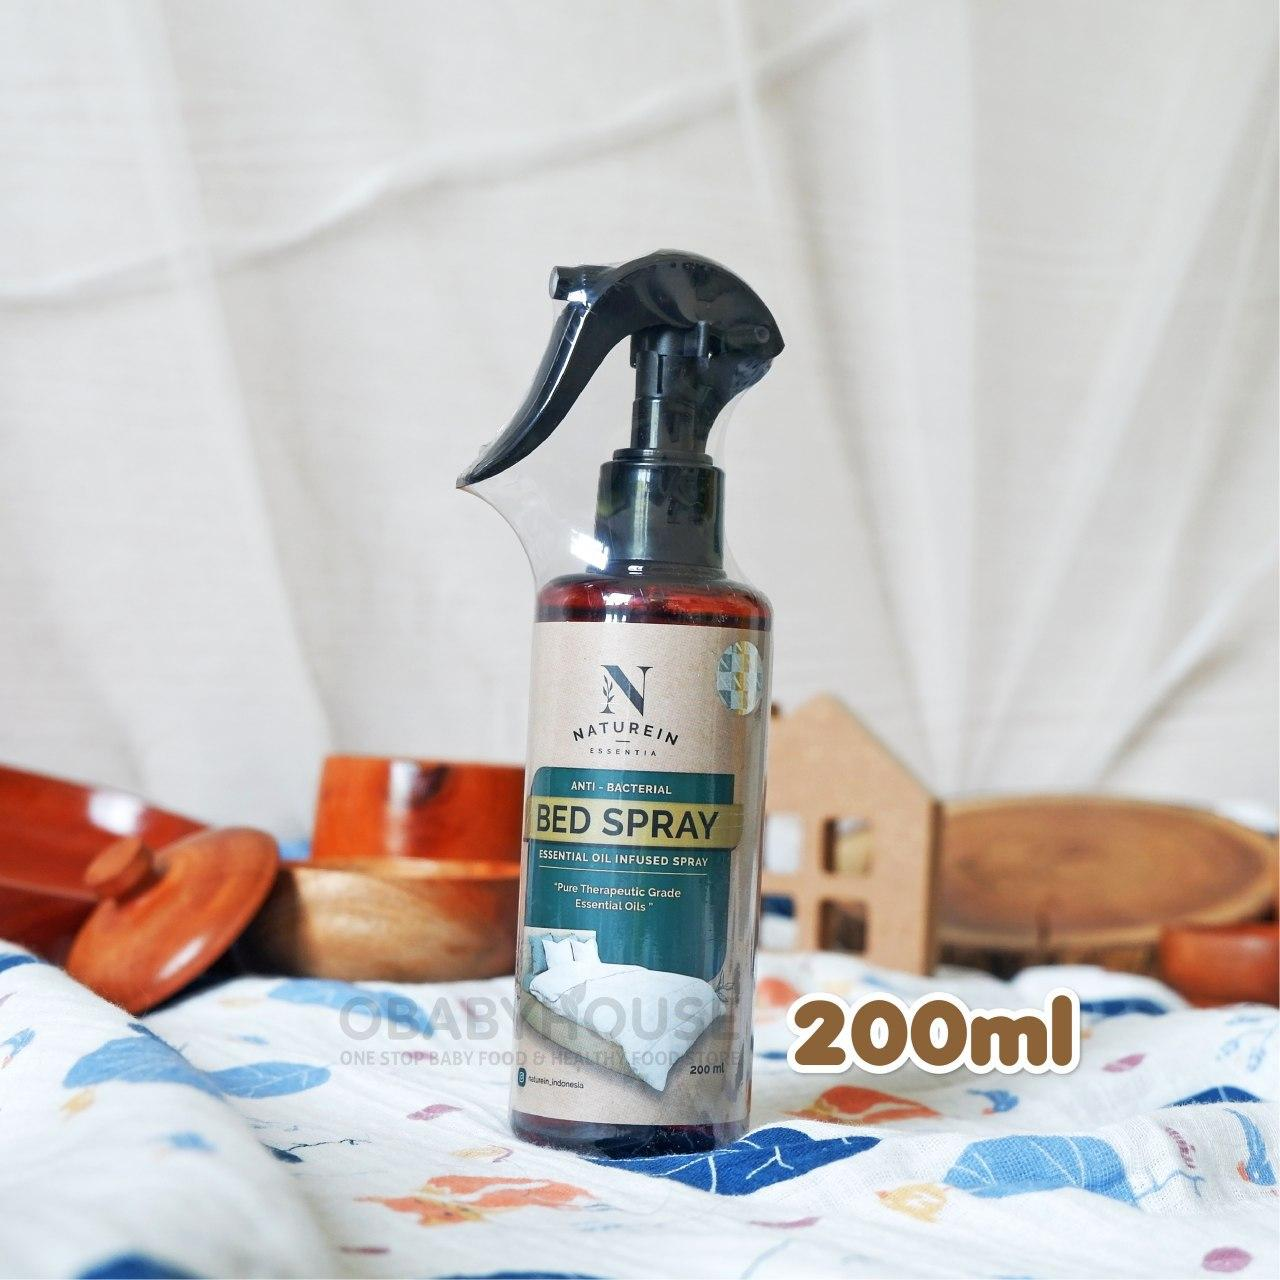 Naturein Anti Bacterial Bed Spray 200 Ml Obabyhouse